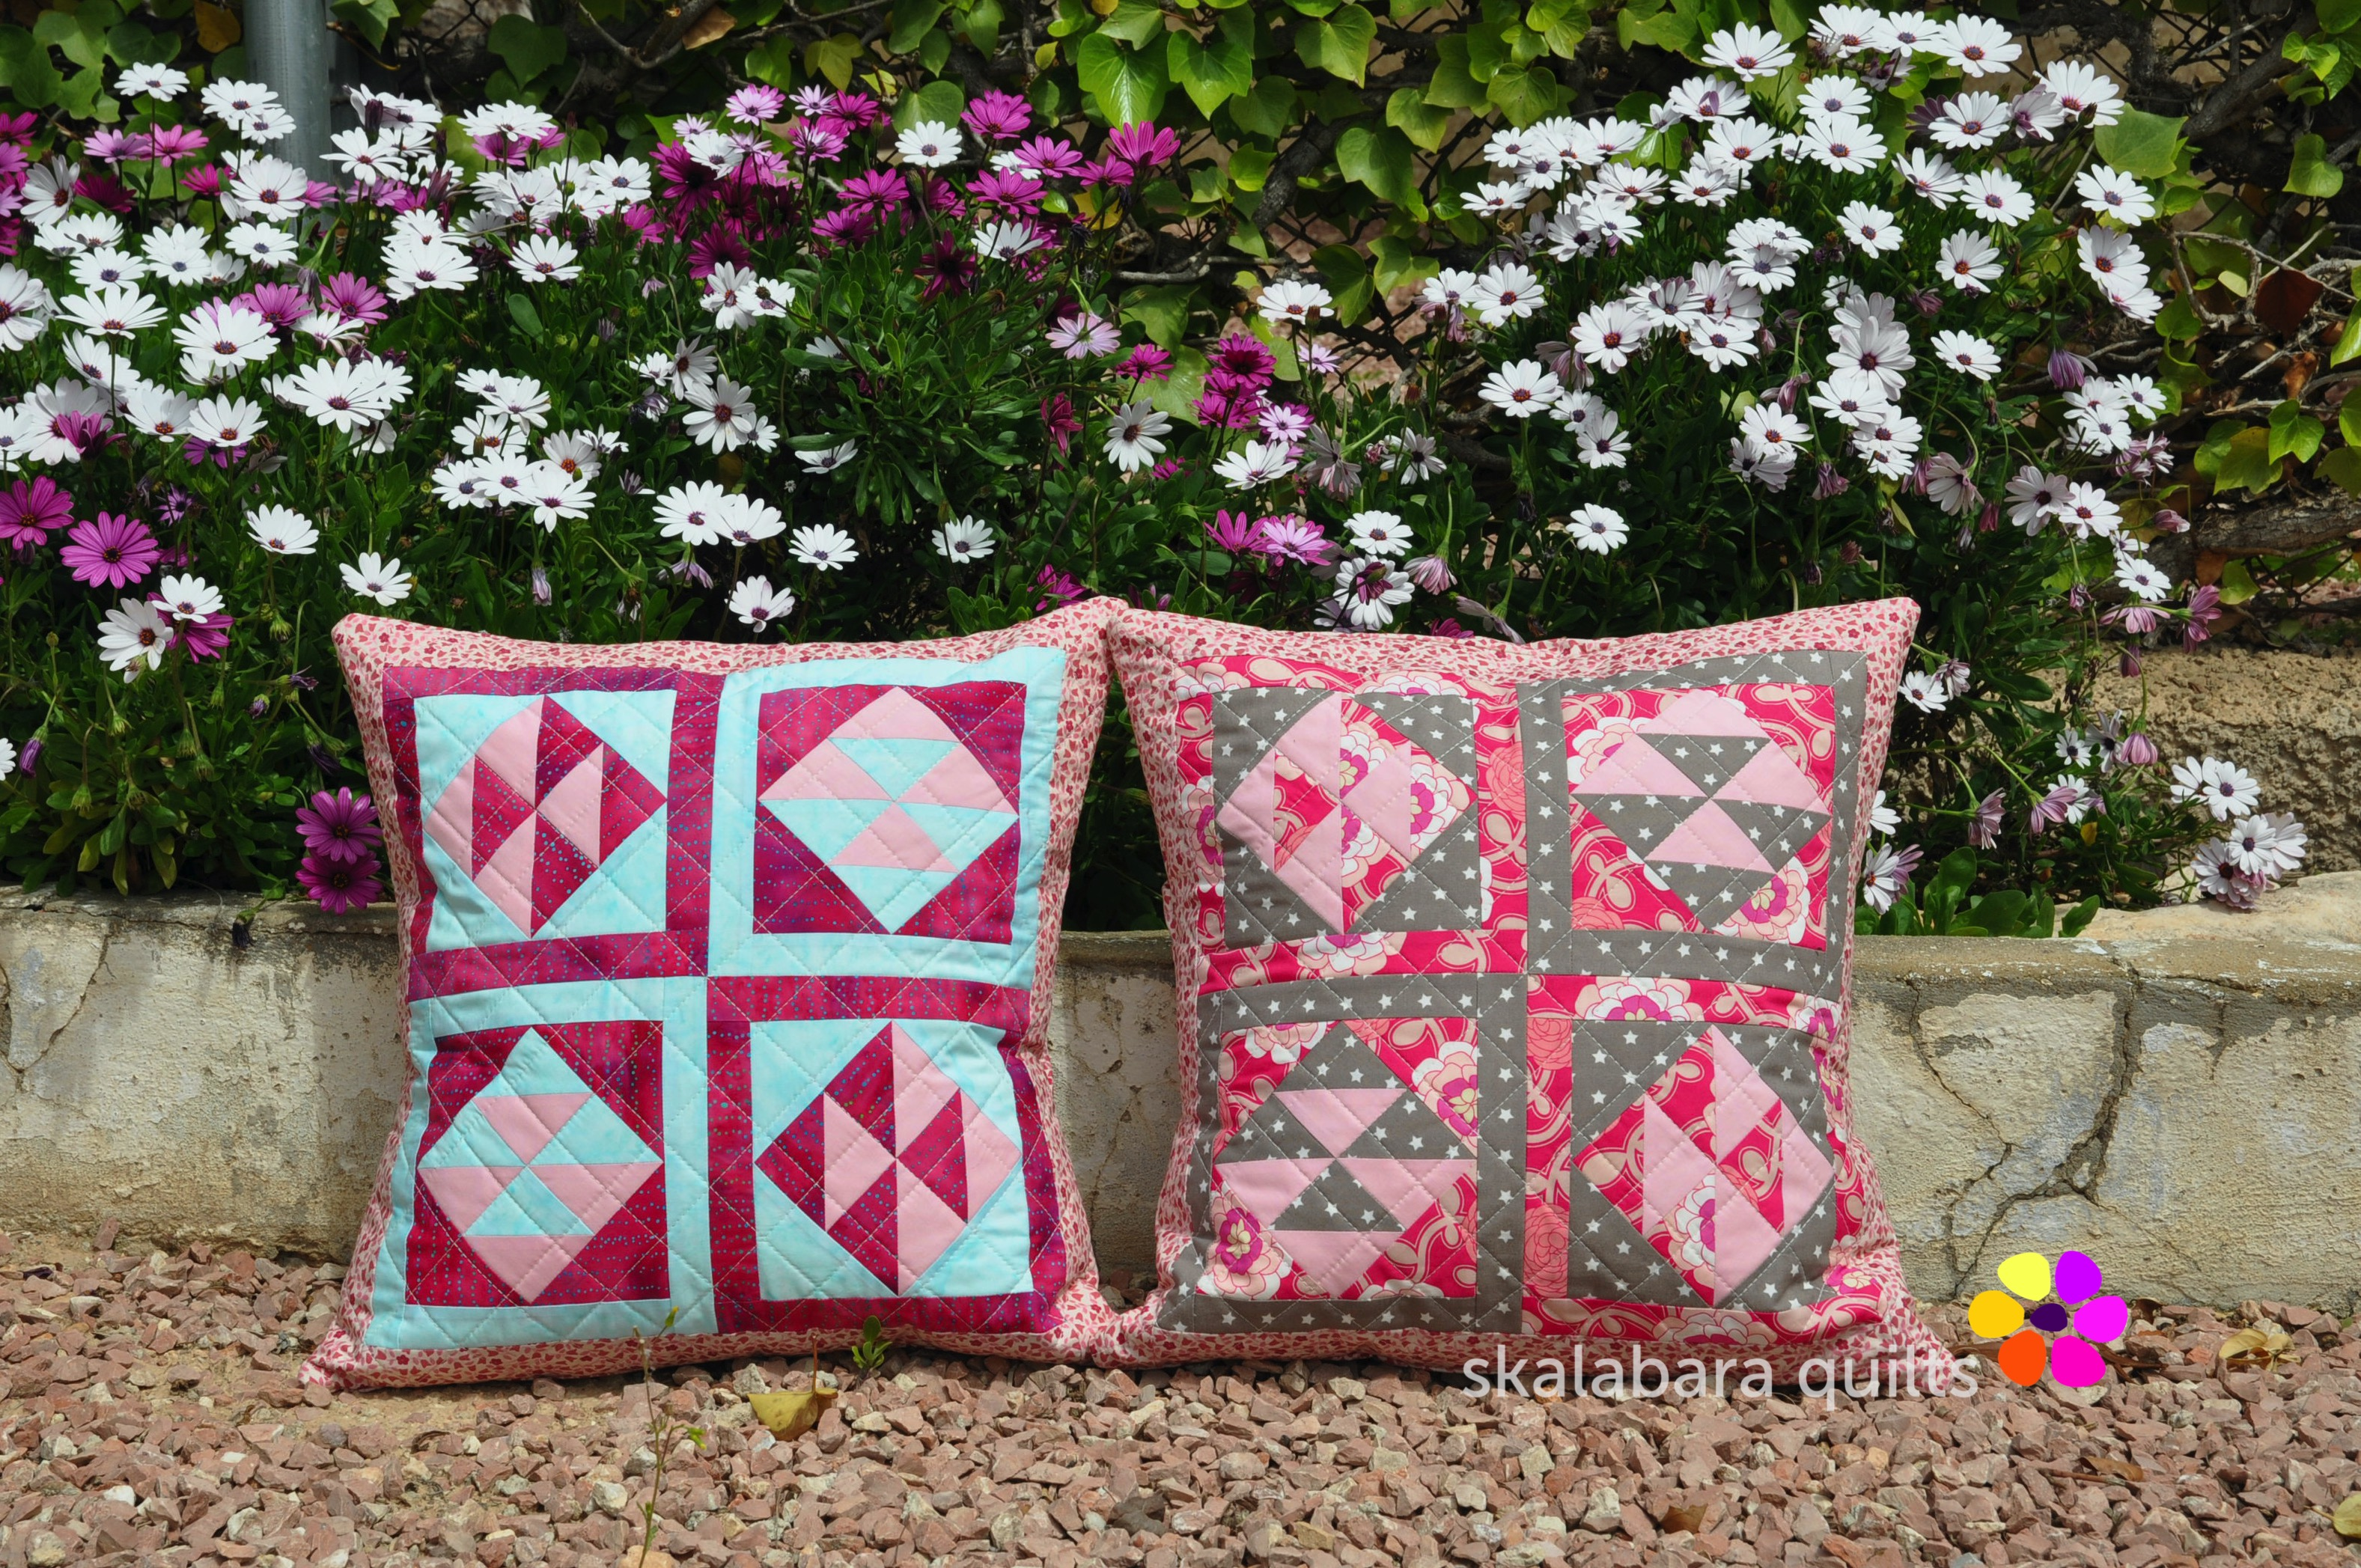 broken dishes cushions 5 - skalabara quilts